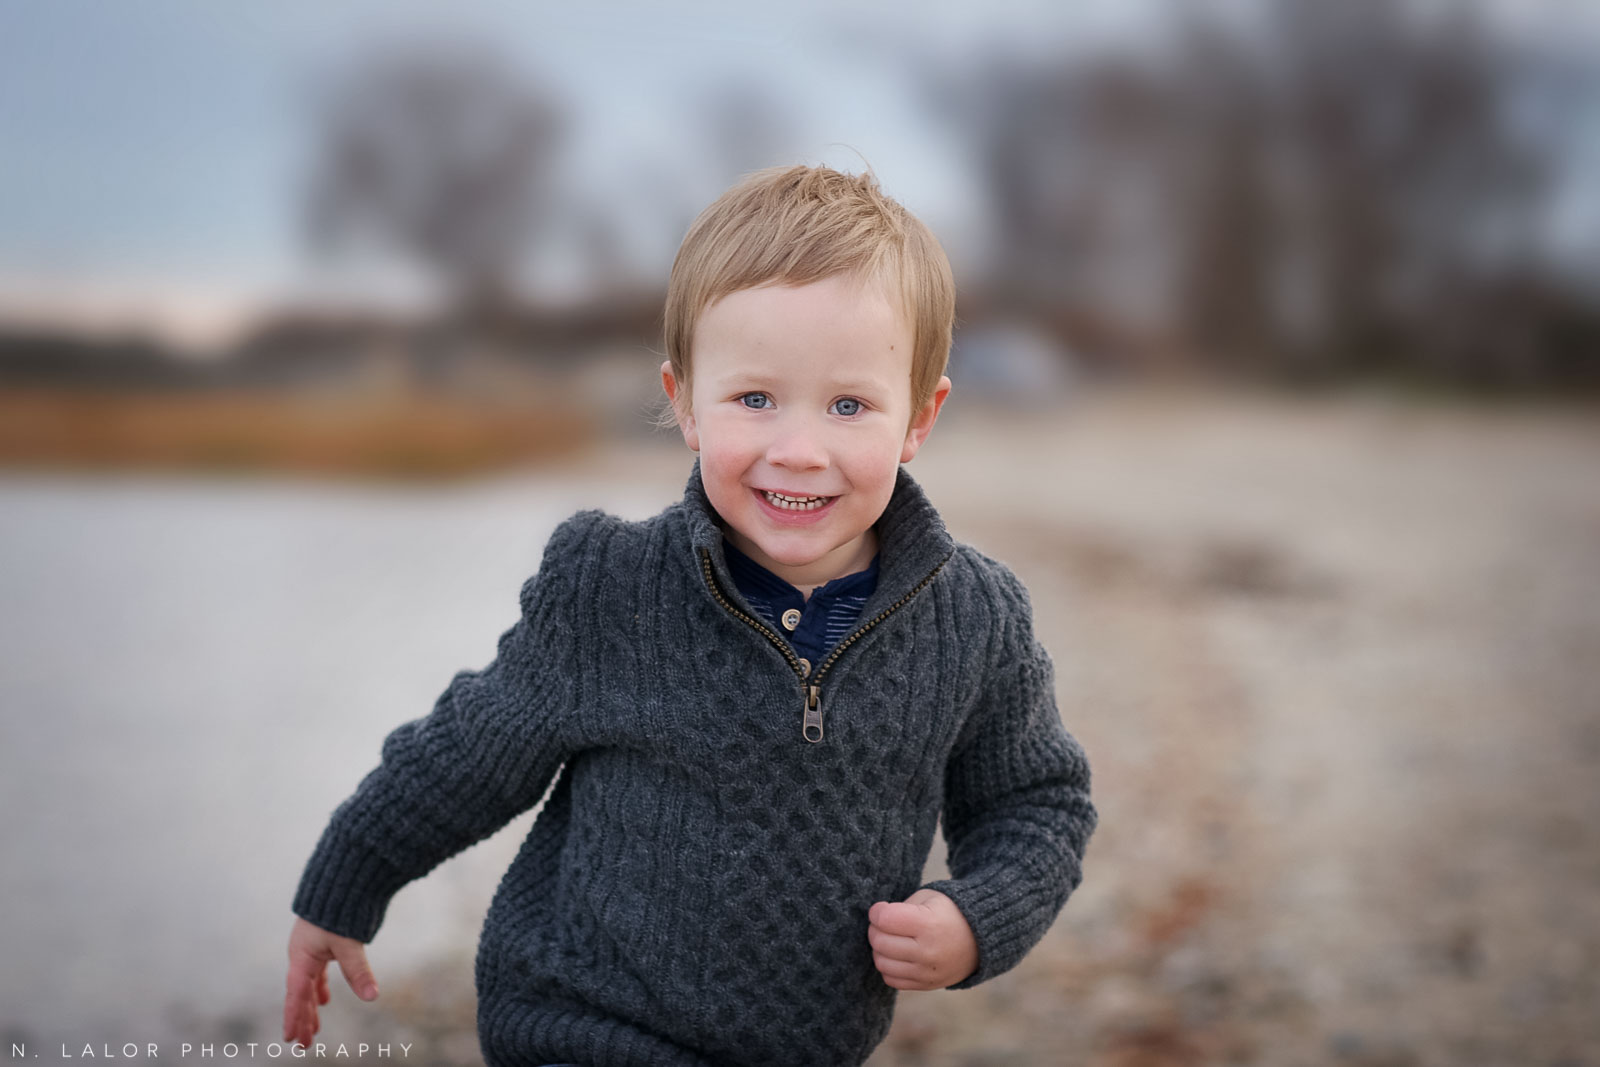 nlalor-photography-120613-styled-boy-winter-beach-session-old-greenwich-7.jpg